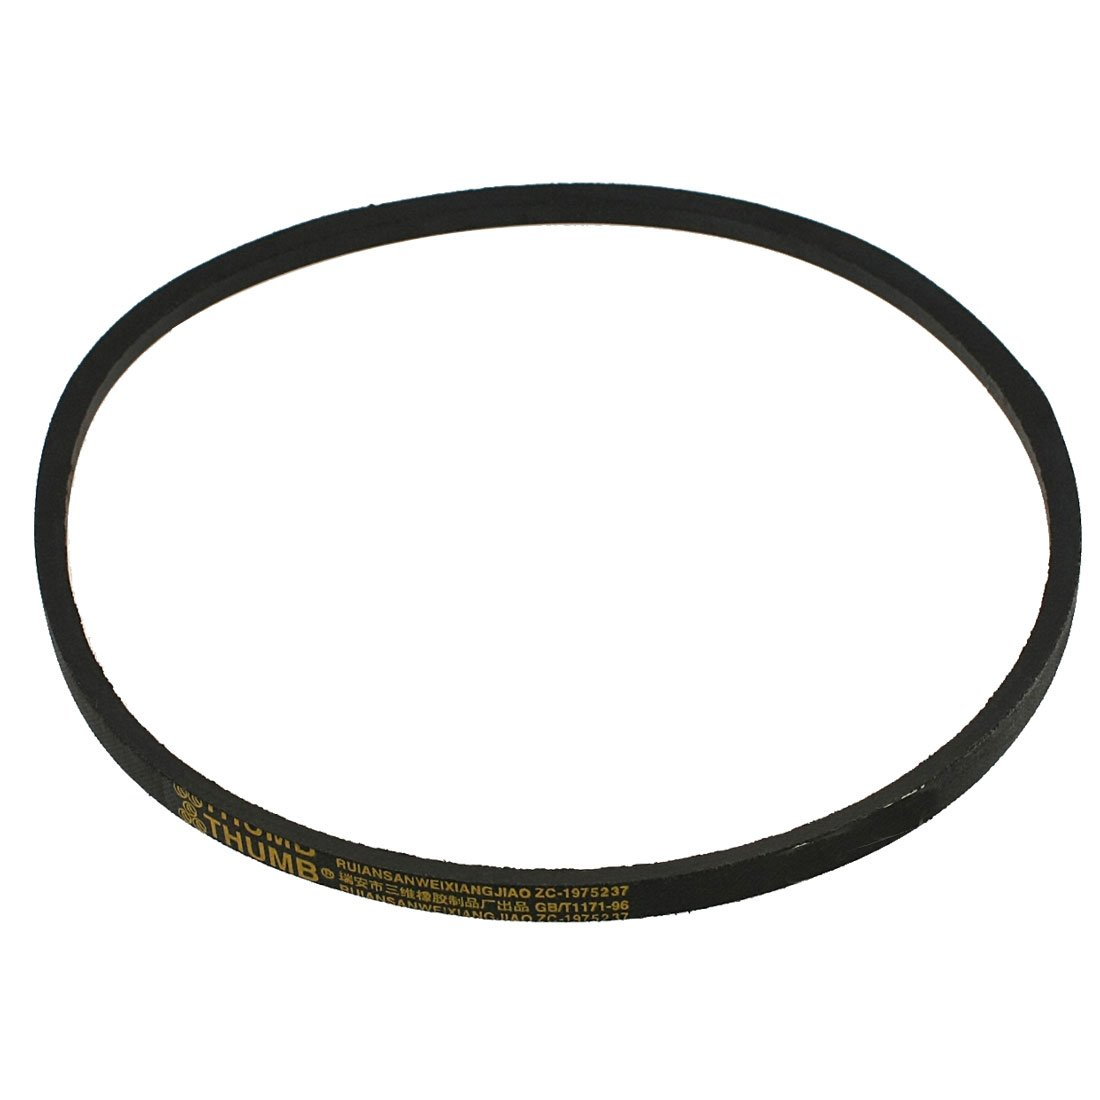 sourcingmap® Black Rubber 37' Inner Girth M Type Automotive V Belt a12020200ux0323